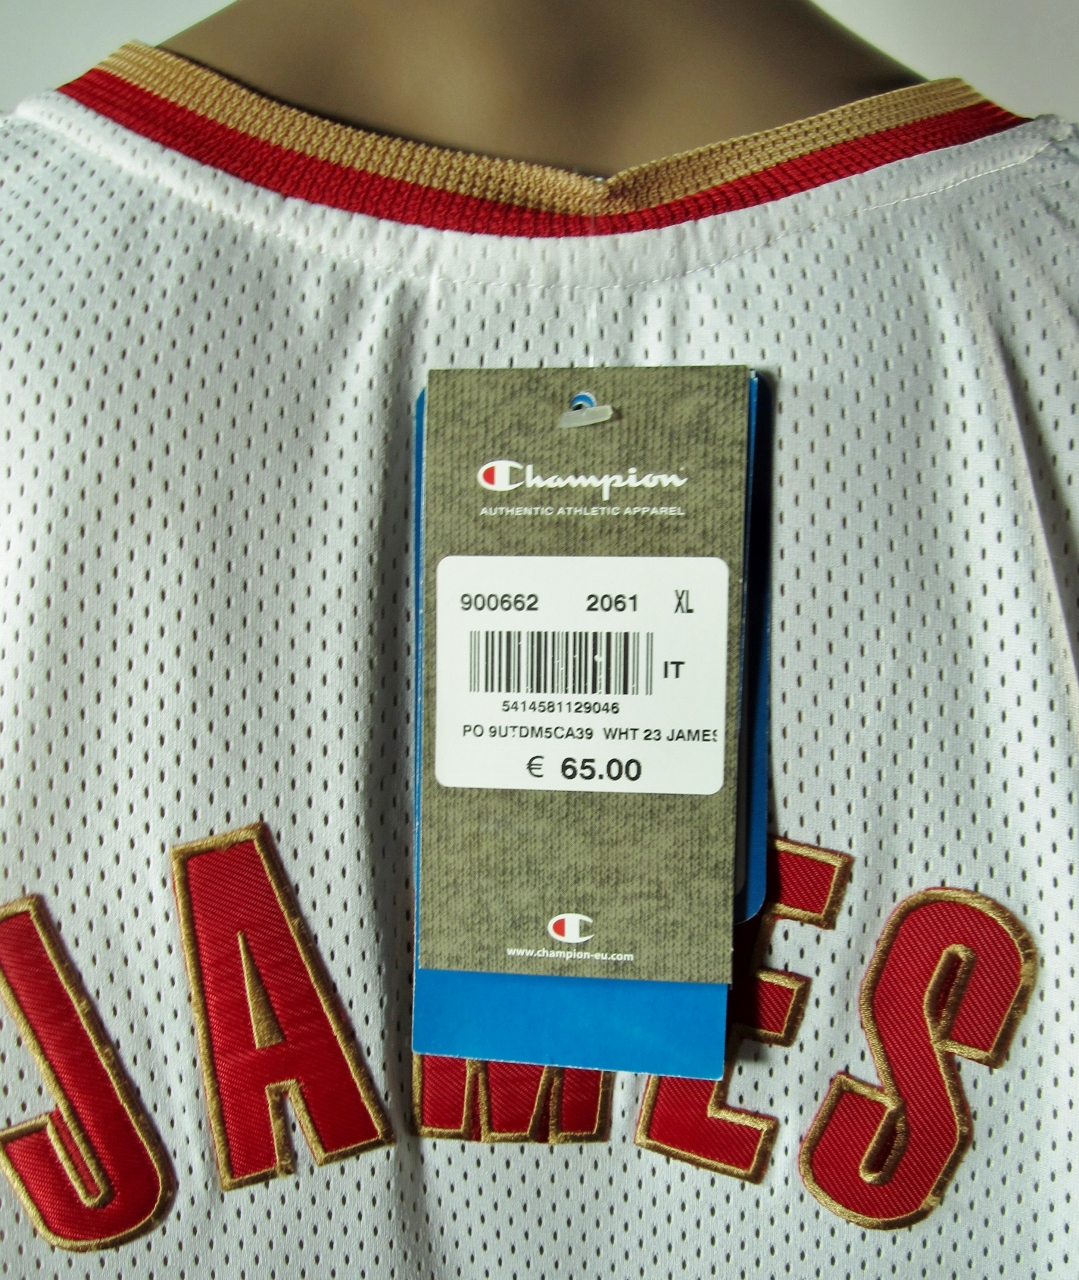 ... Lebron James Cleveland Cavaliers European Issue Rookie Authentic  Champion Jersey 48 XL NWT - Thumbnail 2 ... 1f1b51daa